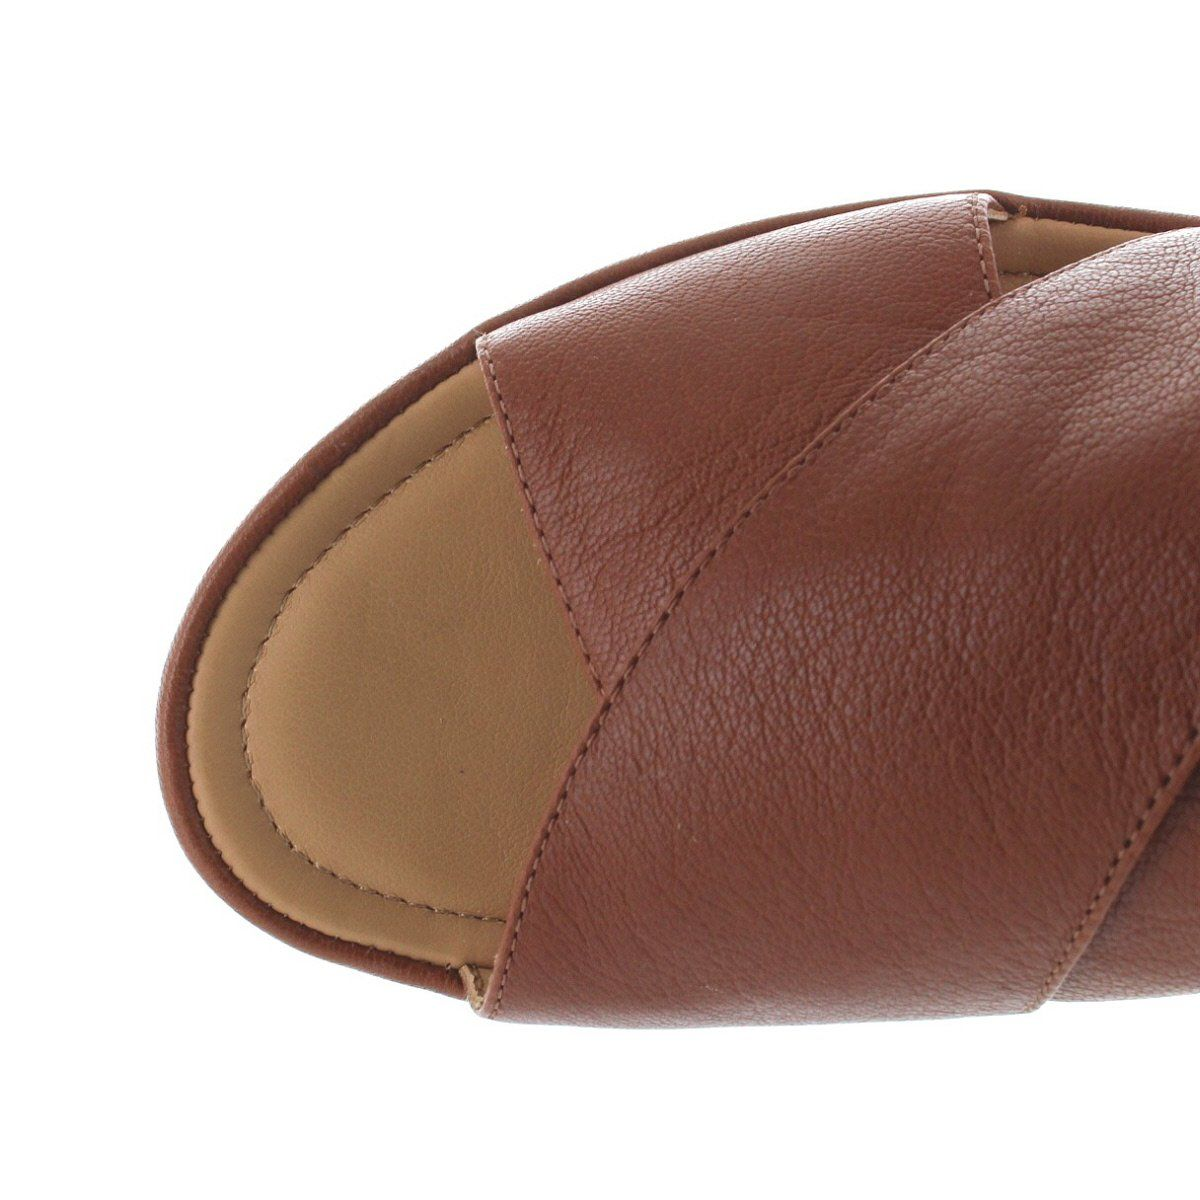 04942e82bd Schedule an all-day event wearing versatile Arena by Me Too! It's an  easy-to-wear platform/wedge sandal featuring a wide crisscross band leather  upper with ...